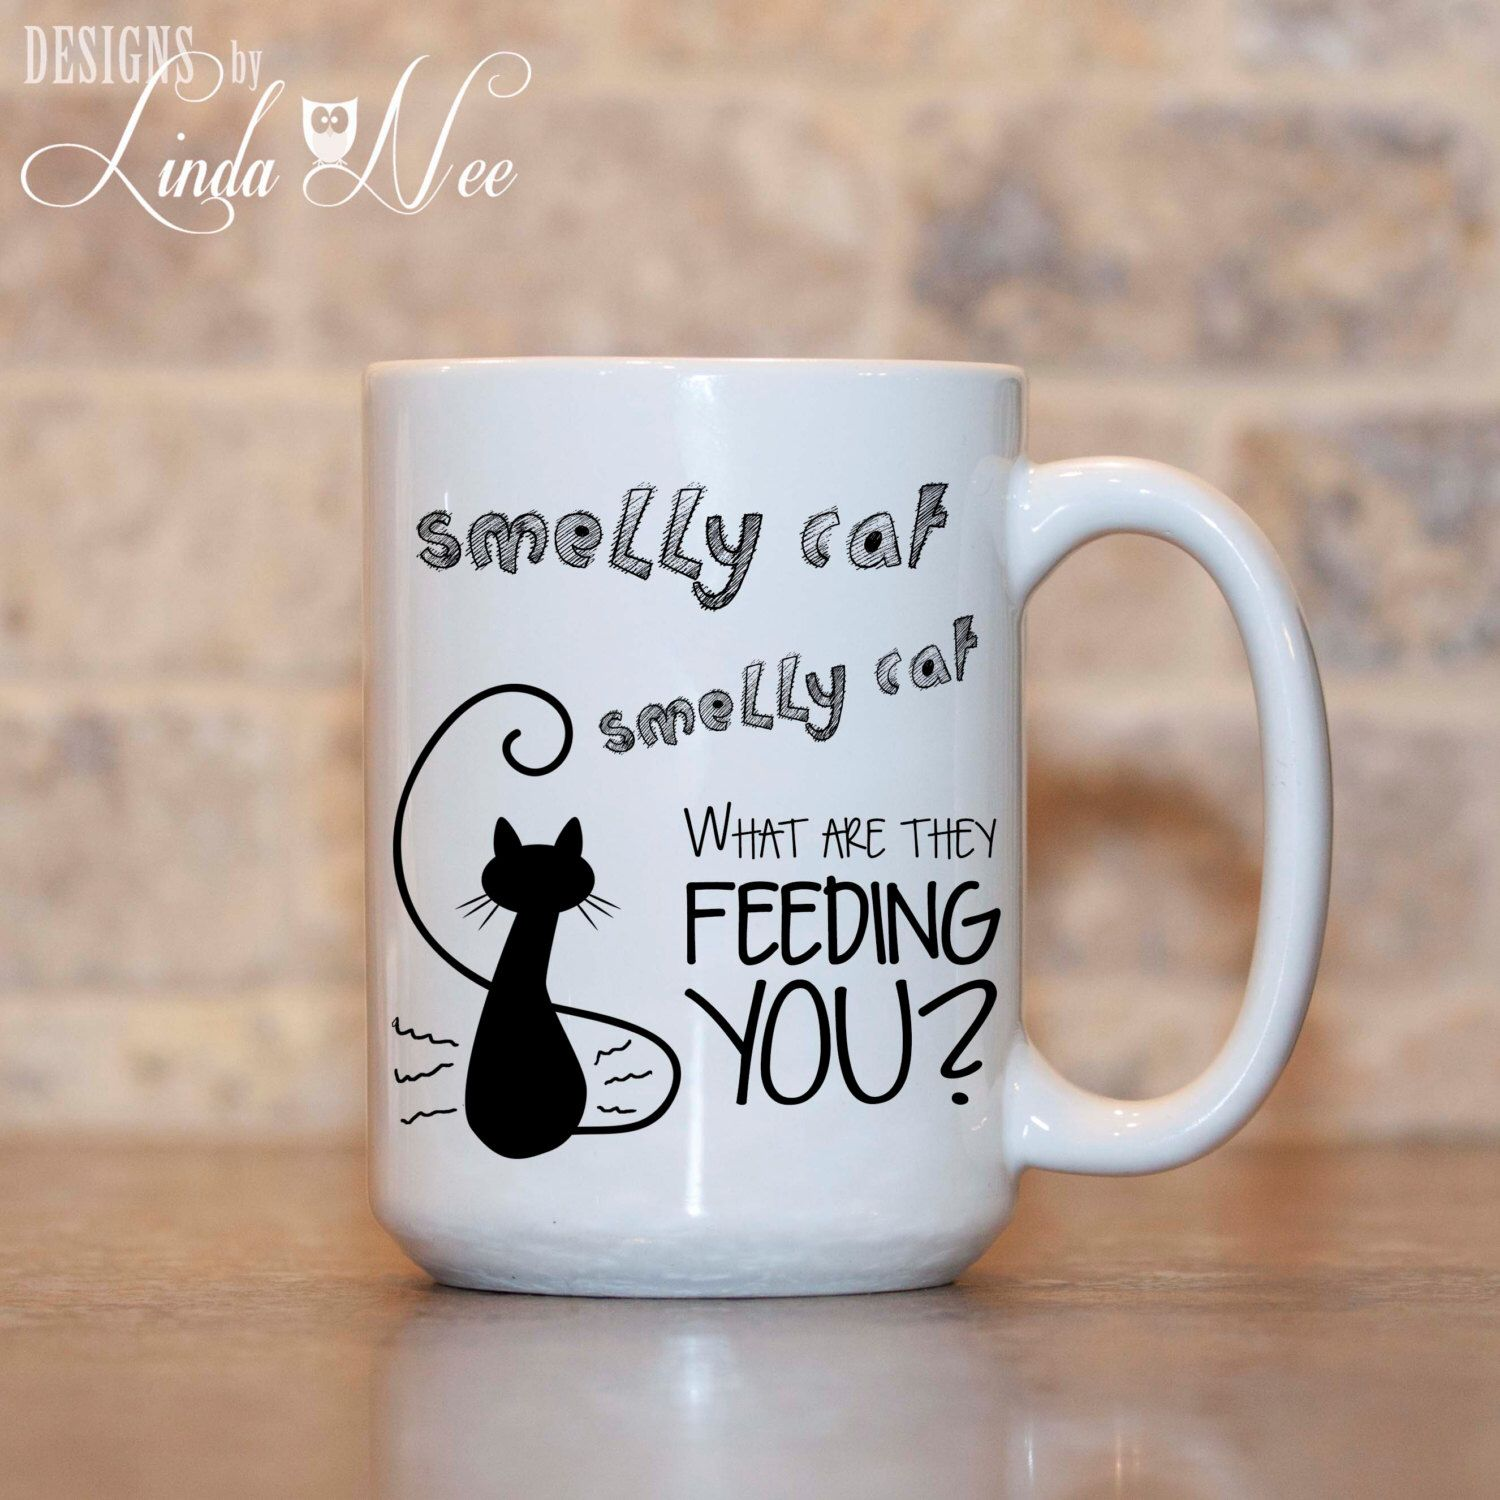 Quotes About Coffee And Friendship Friends Tv Show Best Friend Gift Smelly Cat Smelly Cat Phoebe